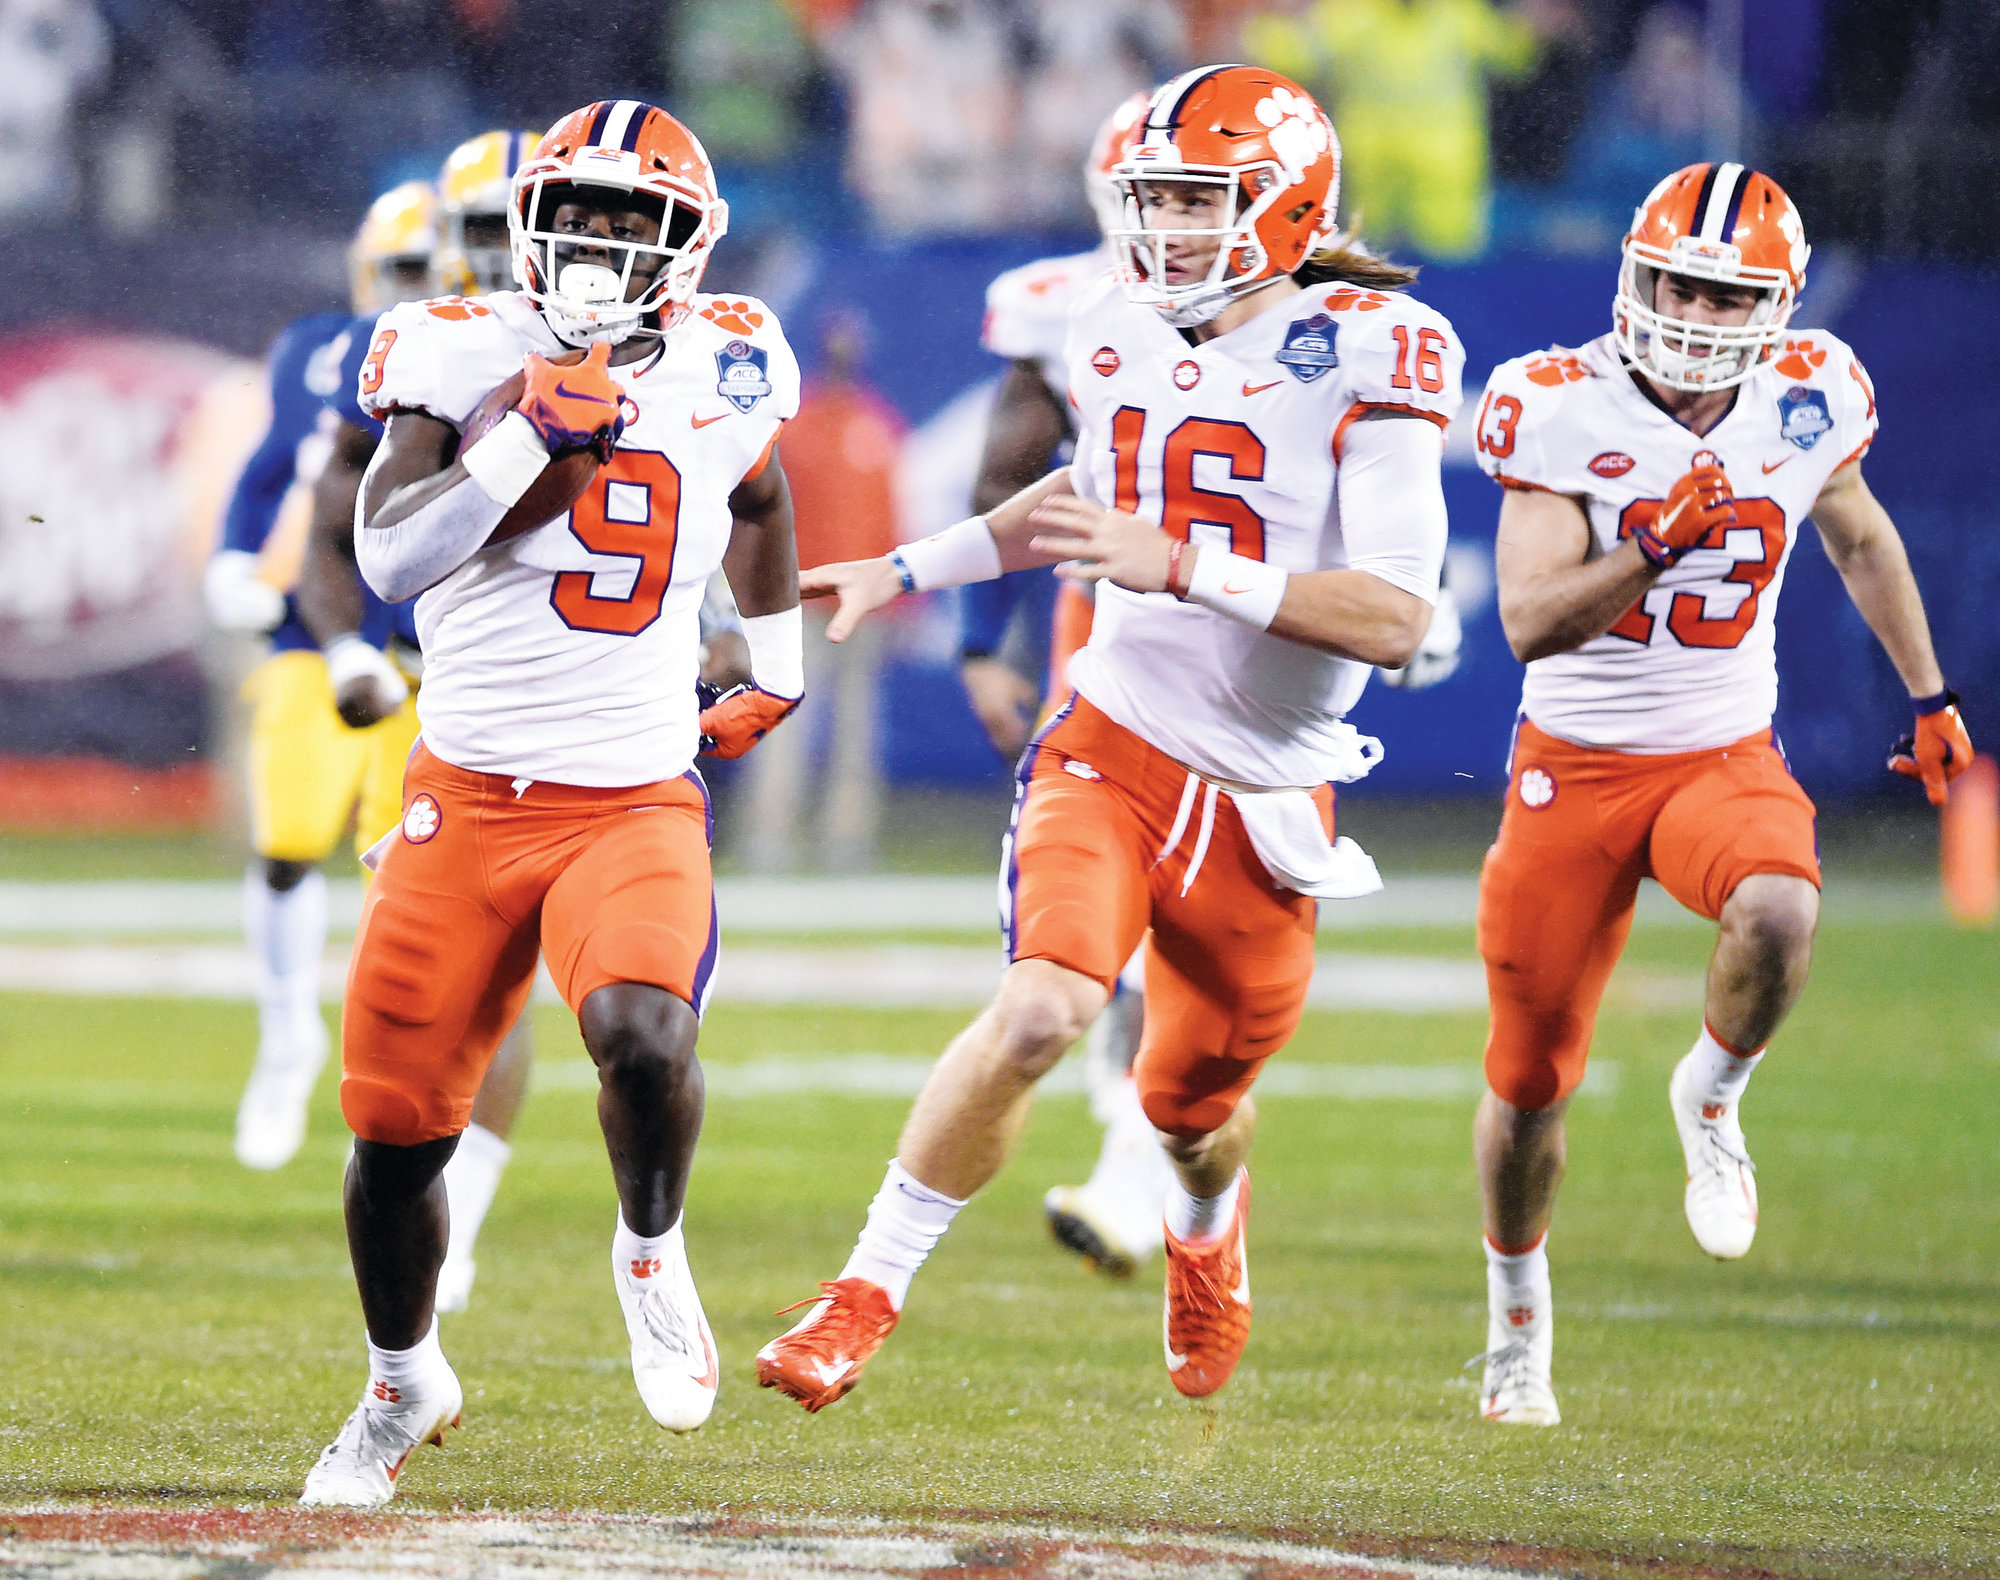 Clemson's Travis Etienne (9) followed by quarterback Trevor Lawrence (16) runs for a touchdown against Pittsburgh in the first half of the Atlantic Coast Conference championship game Charlotte last weekend. Etienne and Lawrence lead Clemson's high-octane offense.